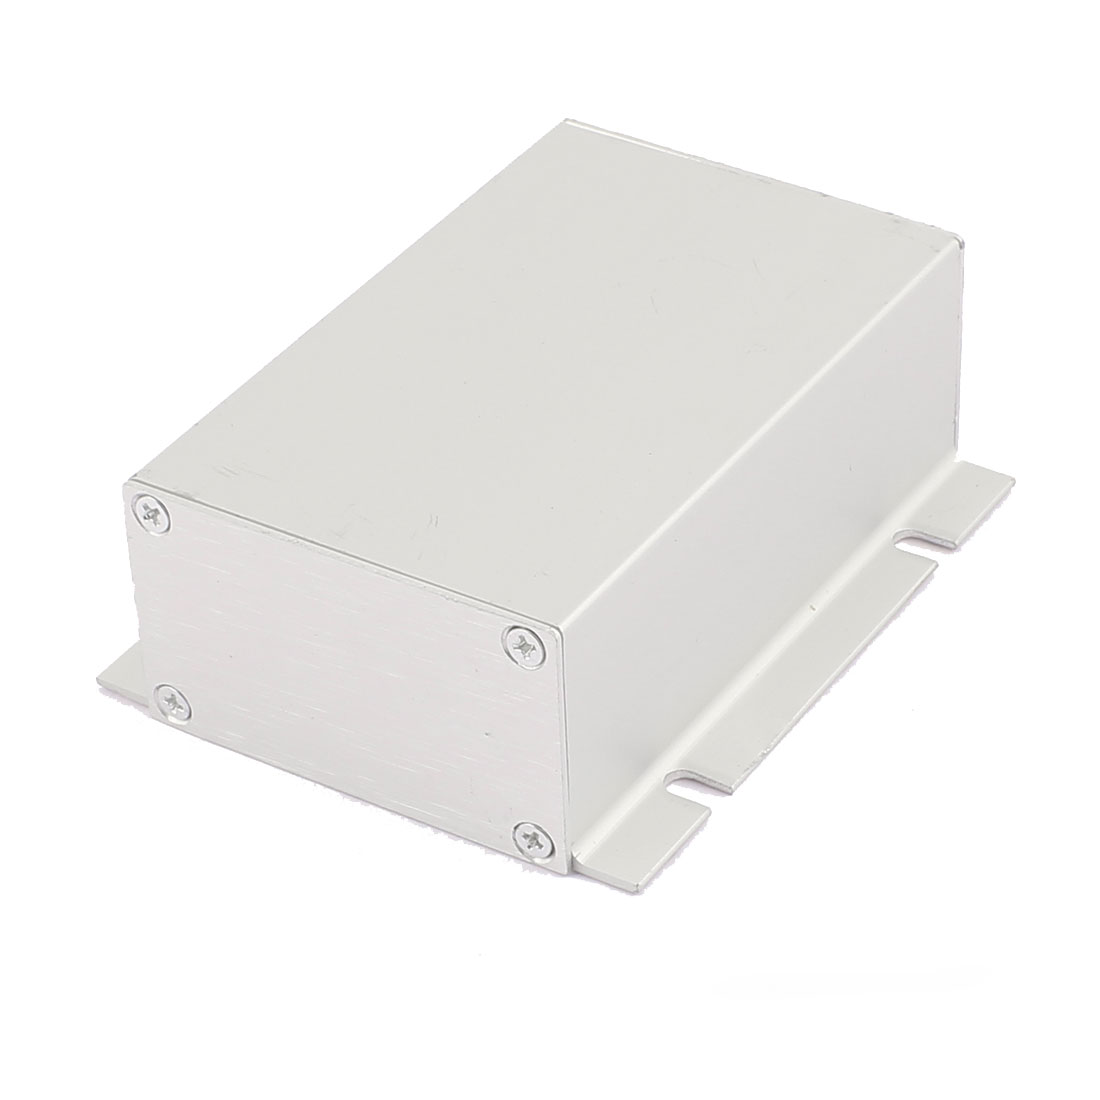 82 x 51 x 30mm Multi-purpose Electronic Extruded Aluminum Enclosure Silver Tone